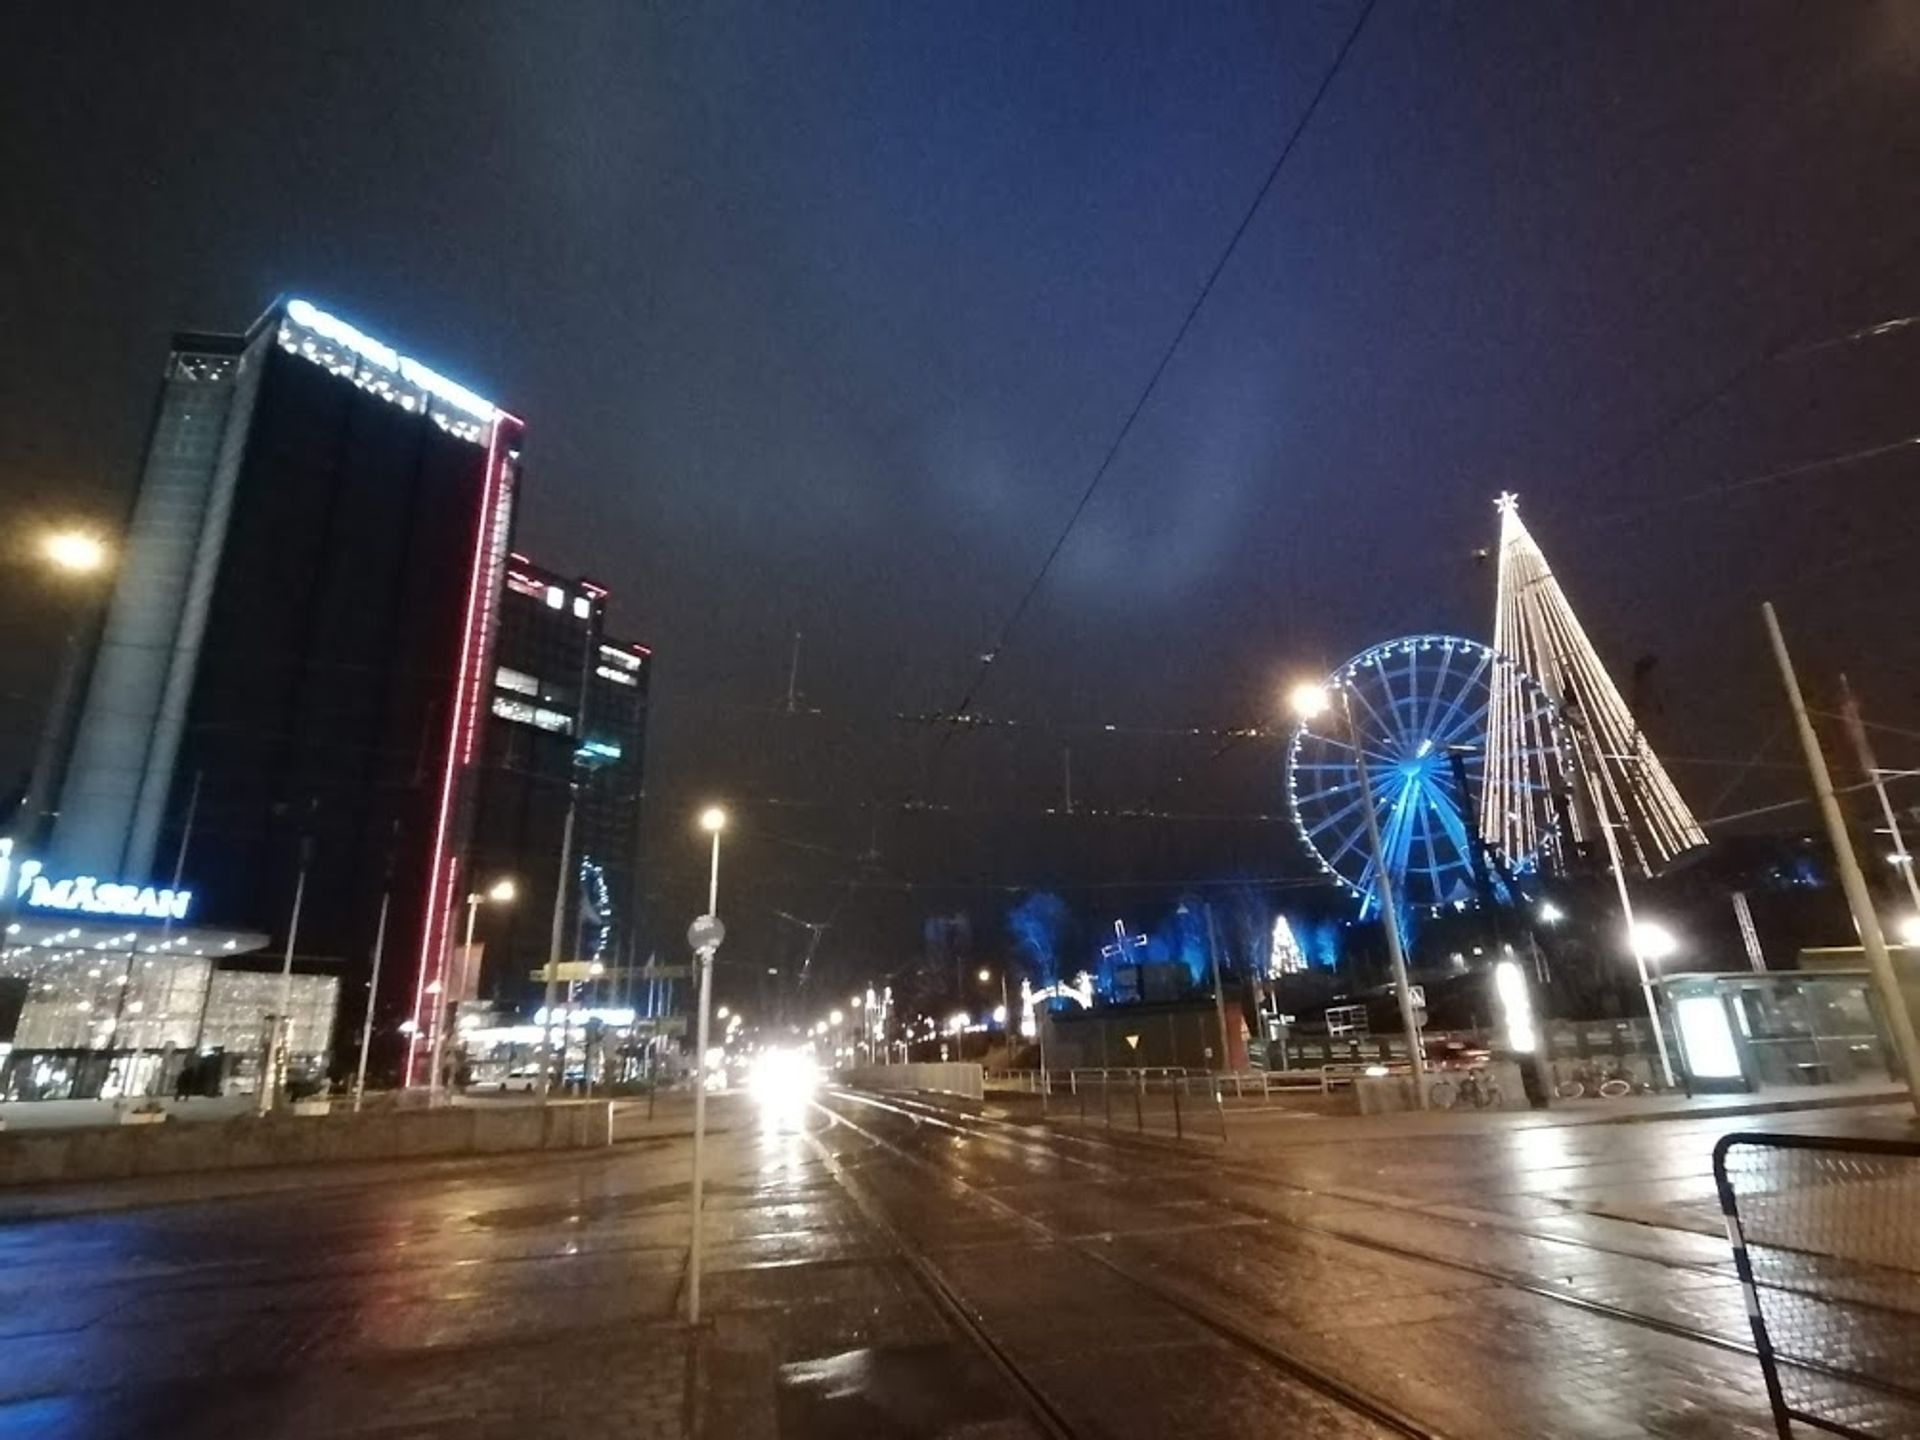 lights reflecting on a glistening street, with a lit up ferris wheel and tree light scuplture in the background